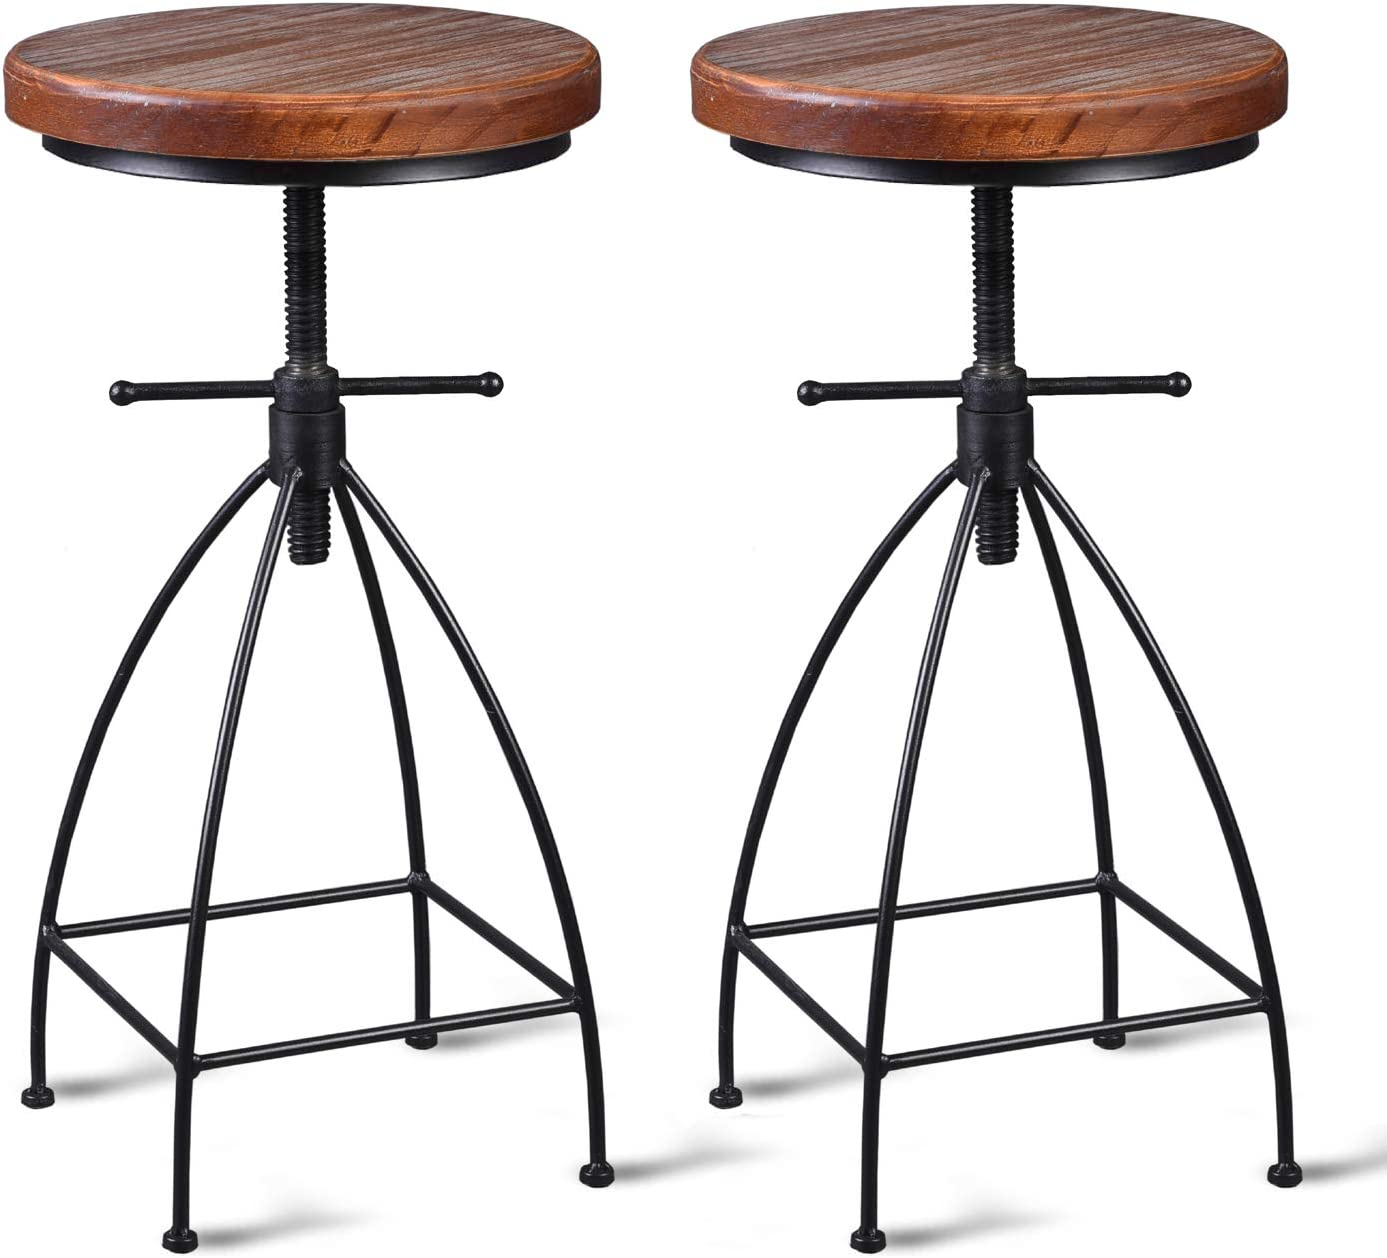 Diwhy Industrial Vintage Rustic Bar Stool, Kitchen Counter Height Adjustable ,Metal Stool,Swivel Stool,24 Inch,Fully Welded Set of 2 (Brown Wooden Top)